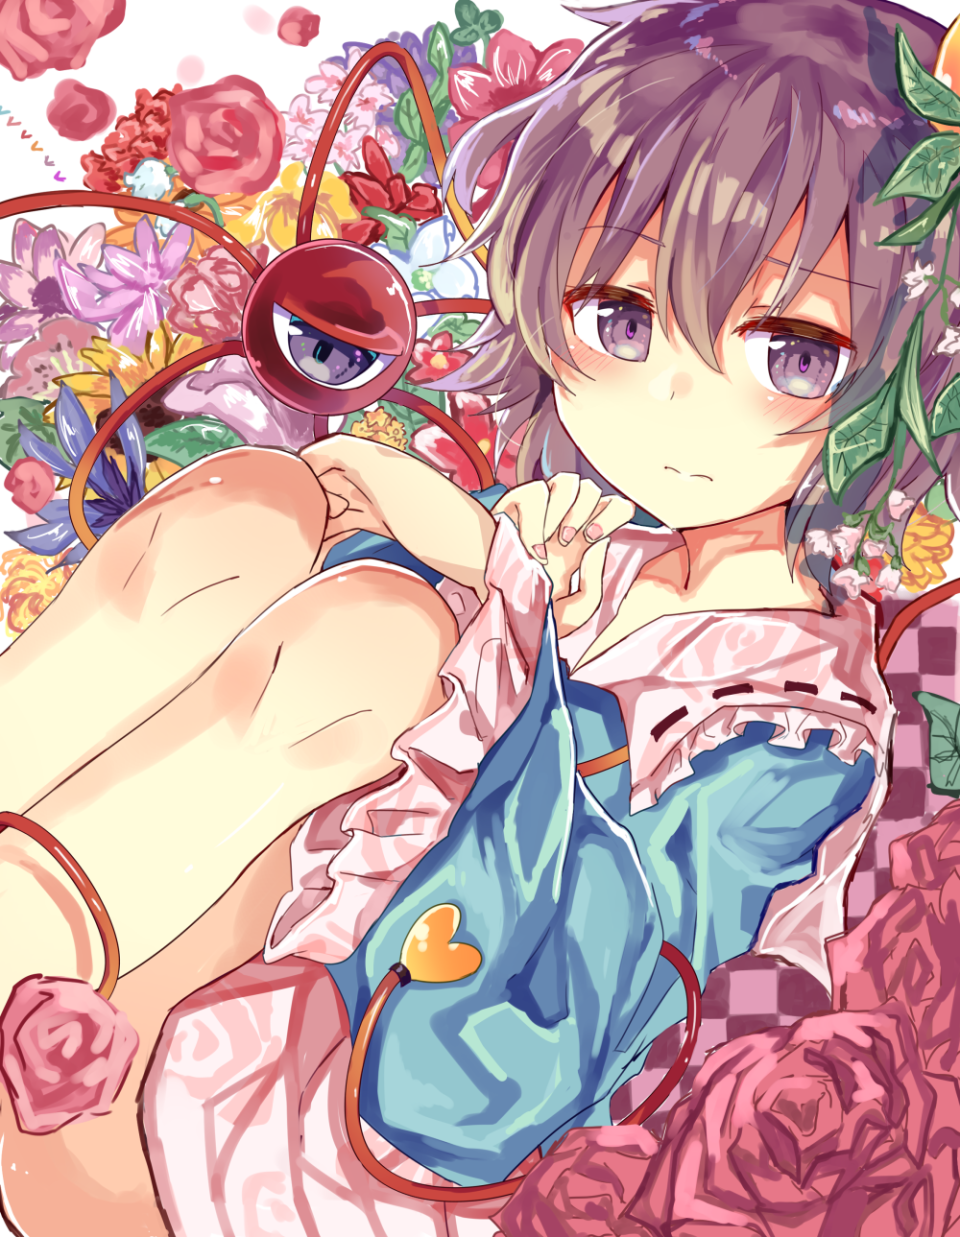 1girl ass blouse blue_blouse blush buttons checkered eyeball feet_out_of_frame floral_print flower flower_request frilled_shirt_collar frilled_sleeves frills hairband hand_on_own_chest heart highres knee_to_chest komeiji_satori legs_together long_sleeves looking_at_viewer multiple_girls pink_skirt purple_hair ribbon-trimmed_collar ribbon_trim rose short_hair skirt solo thighs third_eye to-den_(v-rinmiku) touhou violet_eyes wide_sleeves